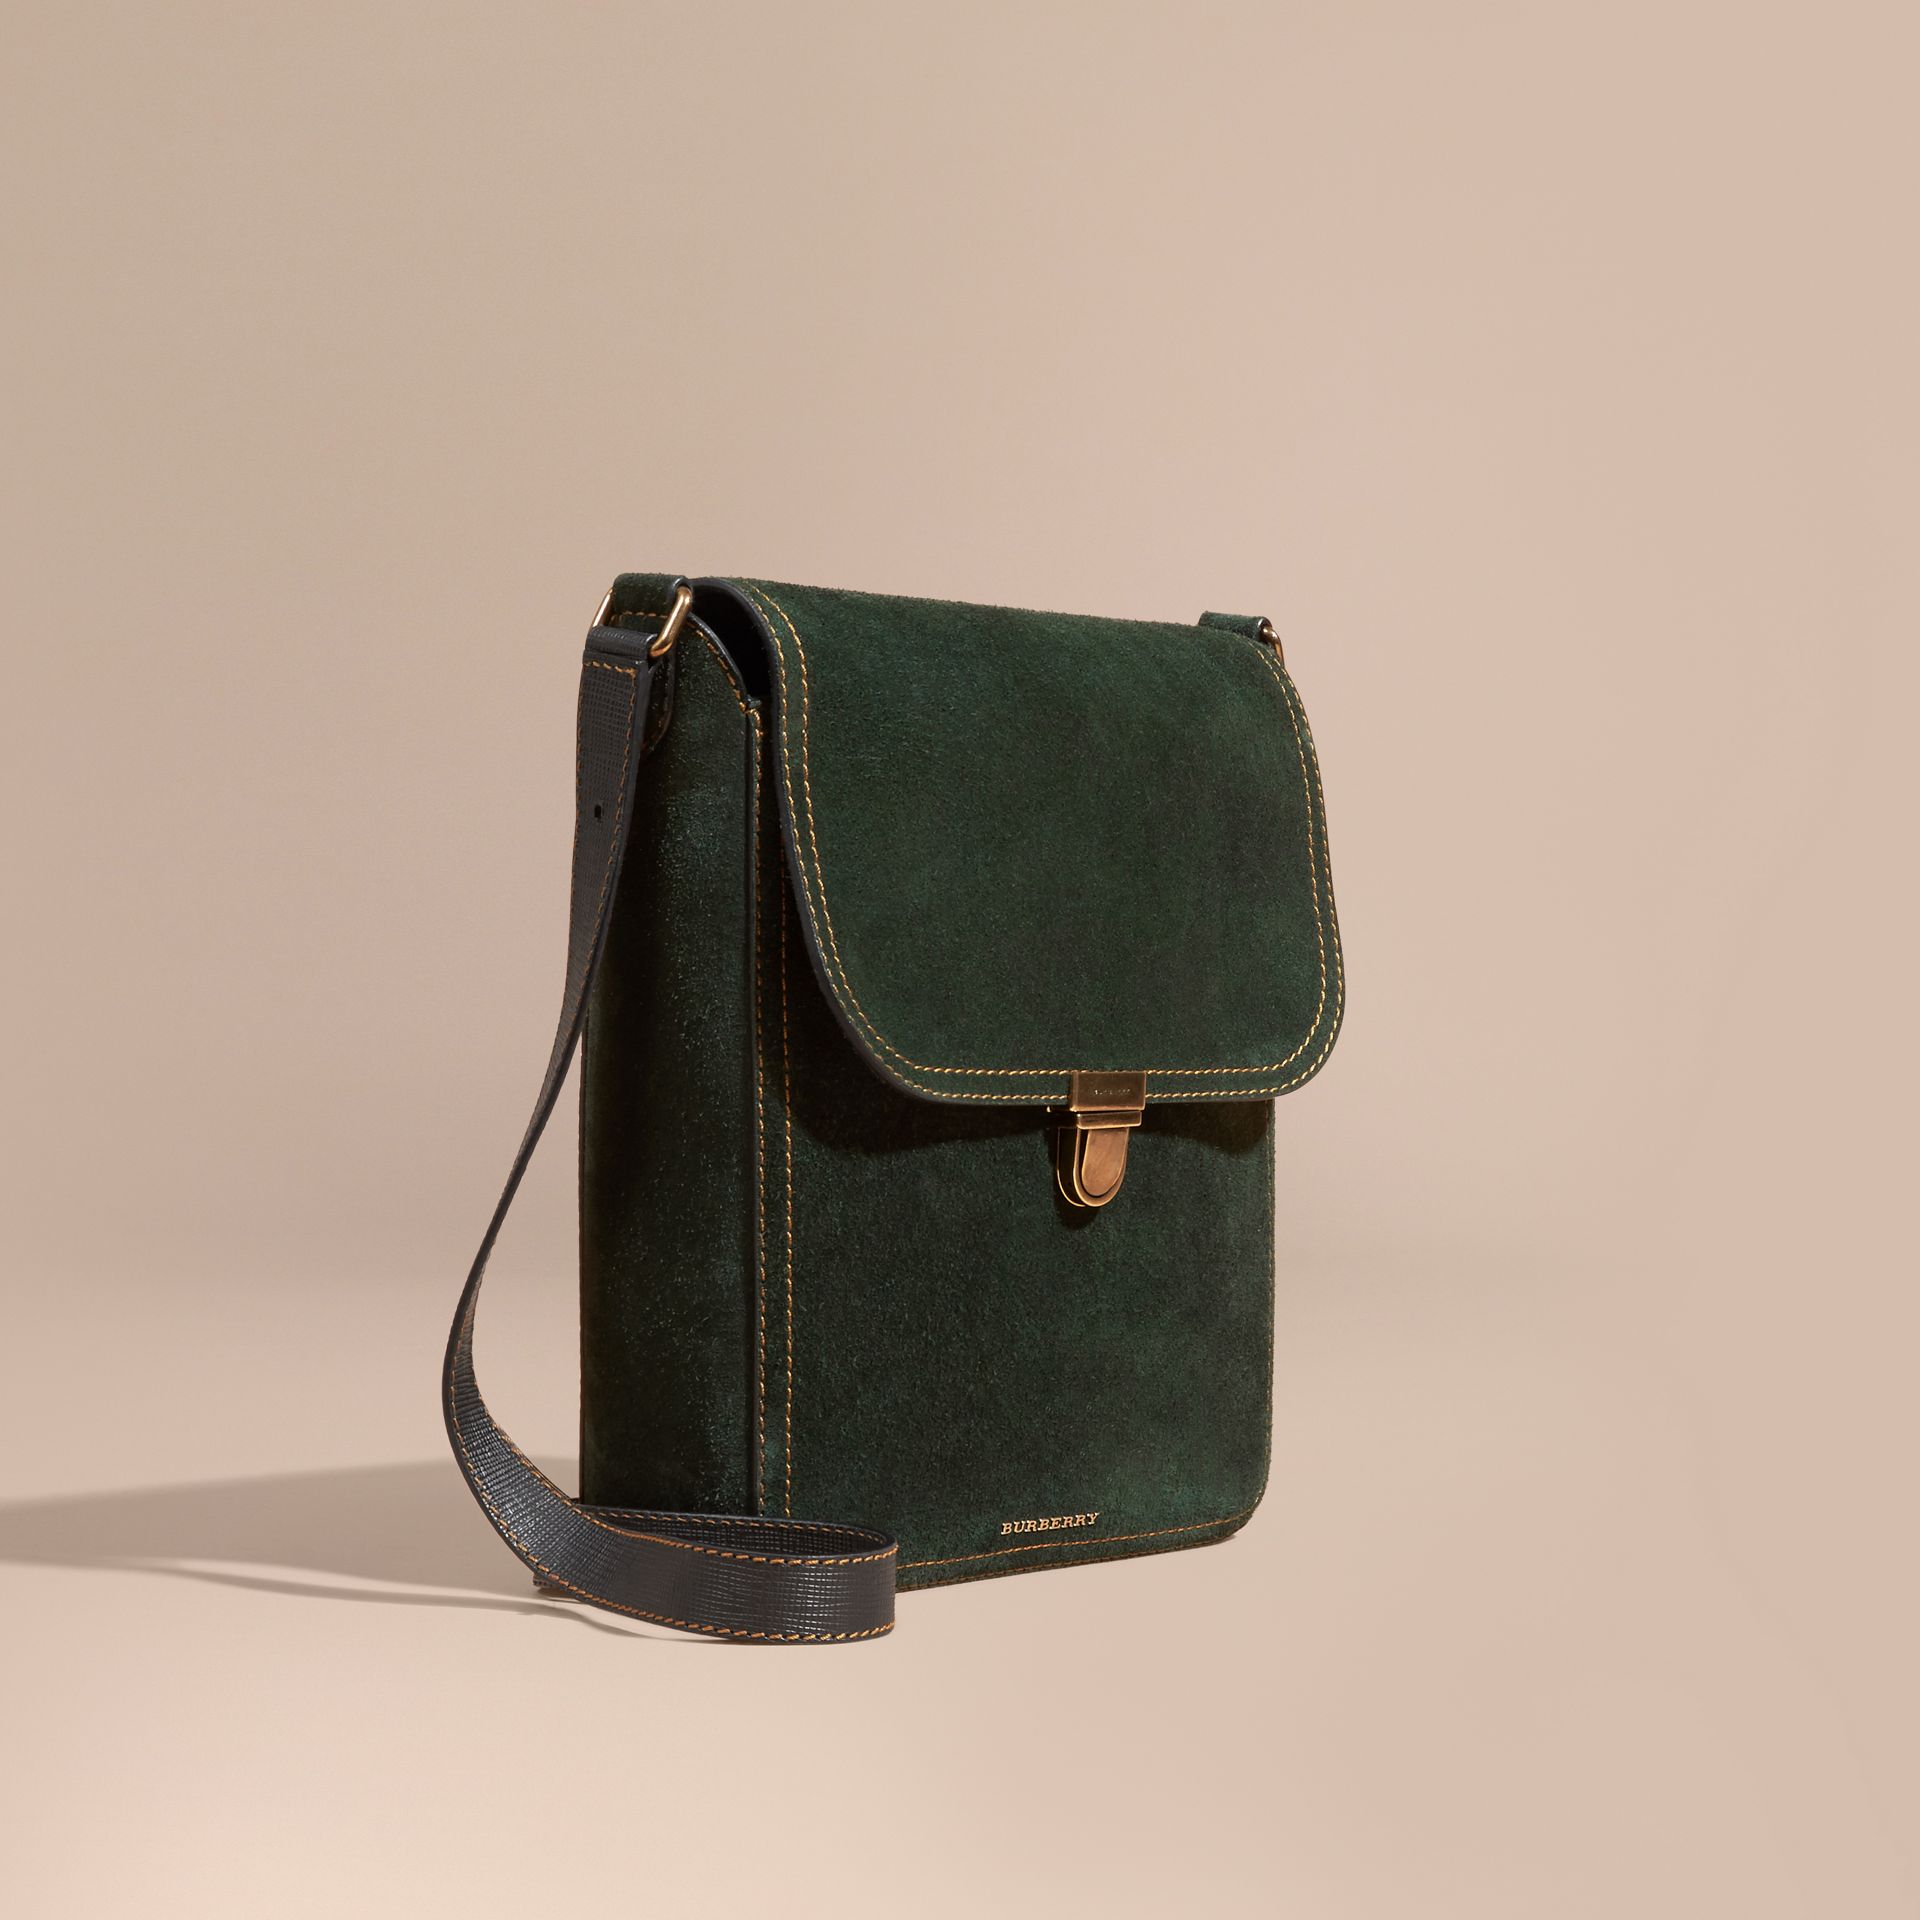 Dark forest green The Medium Satchel in English Suede - gallery image 1